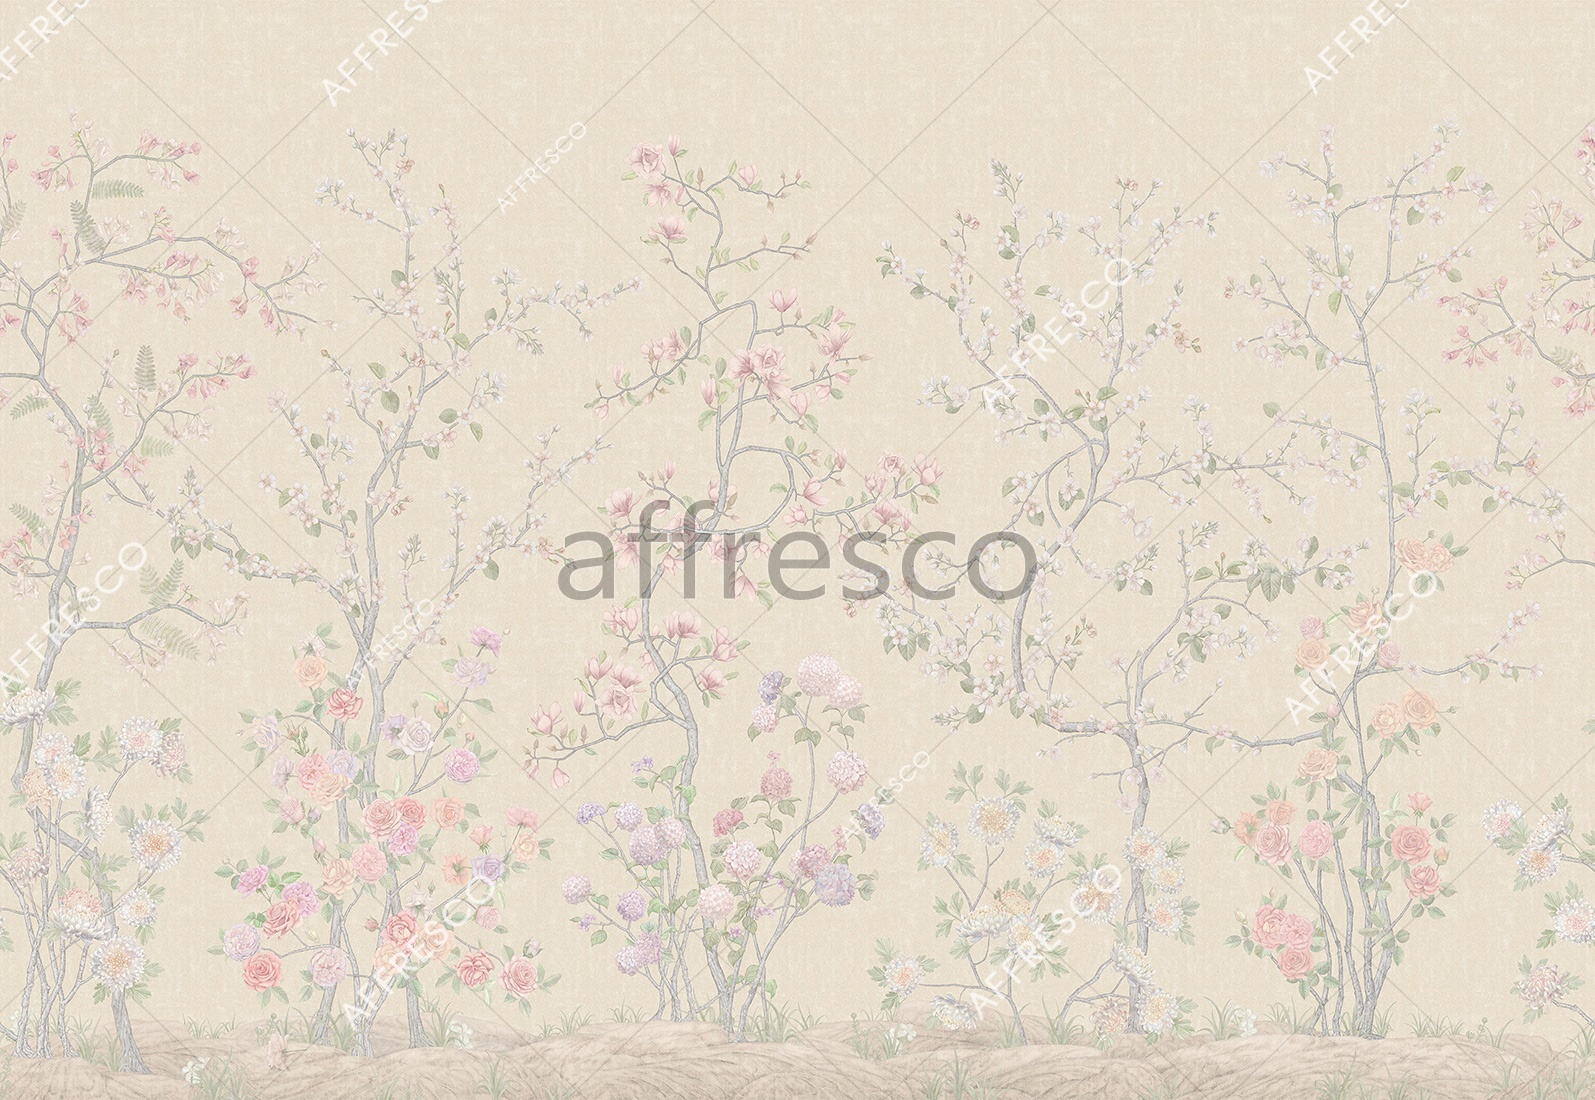 ID136116 | Gardens |  | Affresco Factory